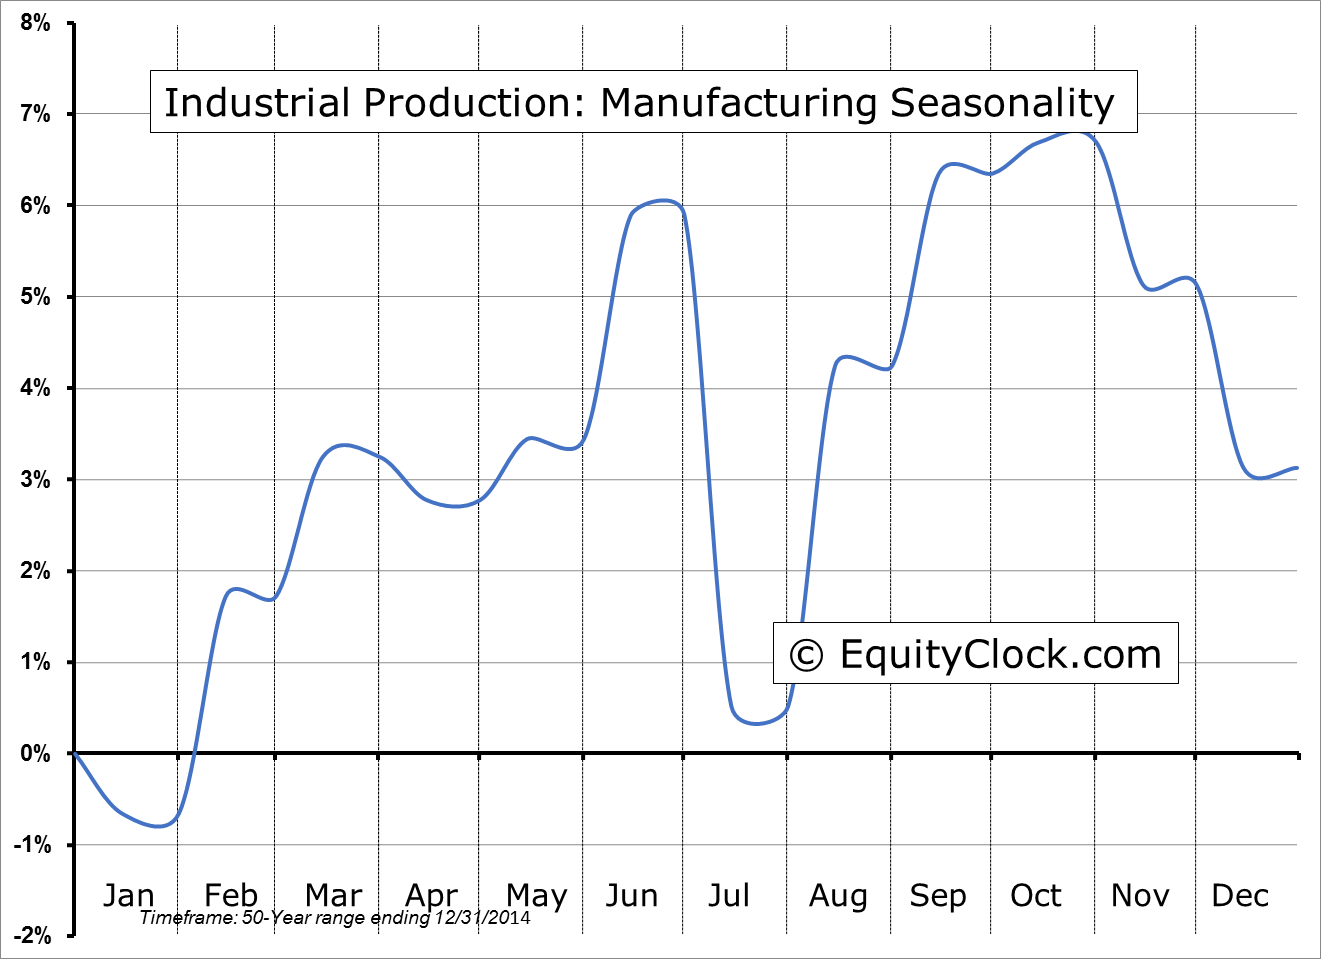 Industrial Production: Manufacturing Seasonality